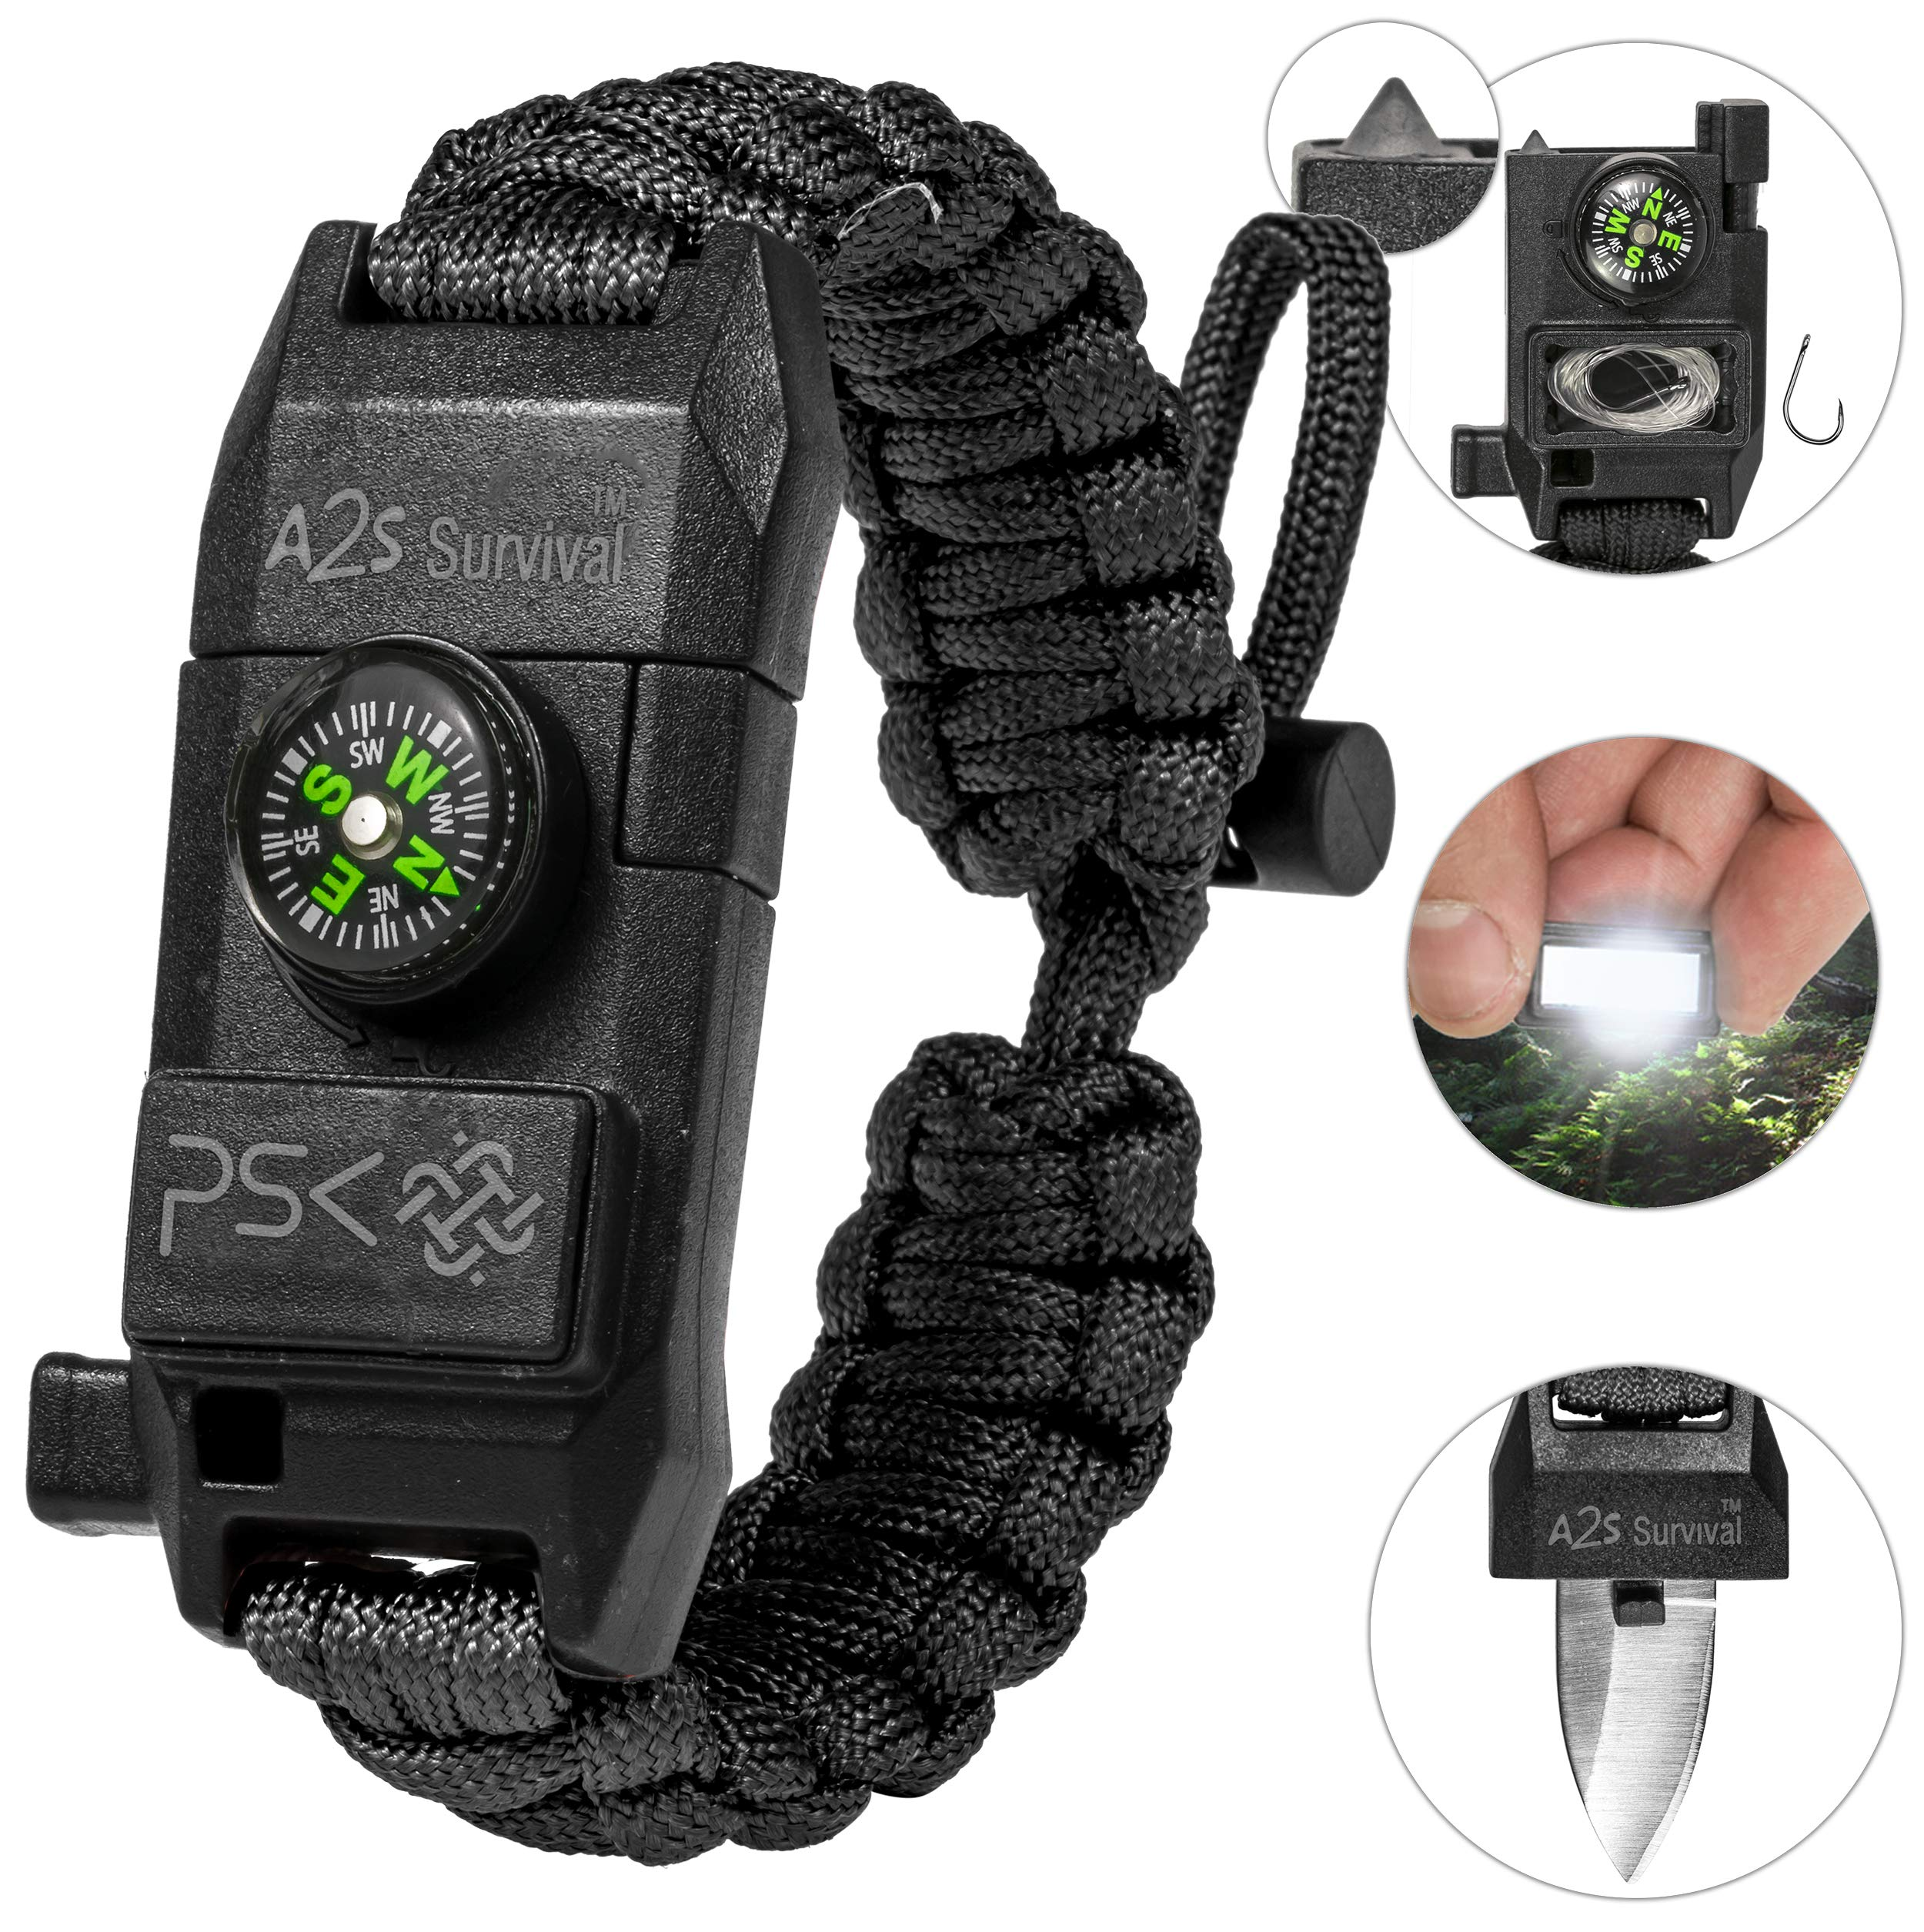 Protection PSK Paracord Bracelet 8-in-1 Personal Survival Kit Urban & Outdoors Survival Knife, Fire Starter, Glass Breaker, Survival Whistle, Signal Mirror, Fishing Hook & String, Compass Price: $9.99